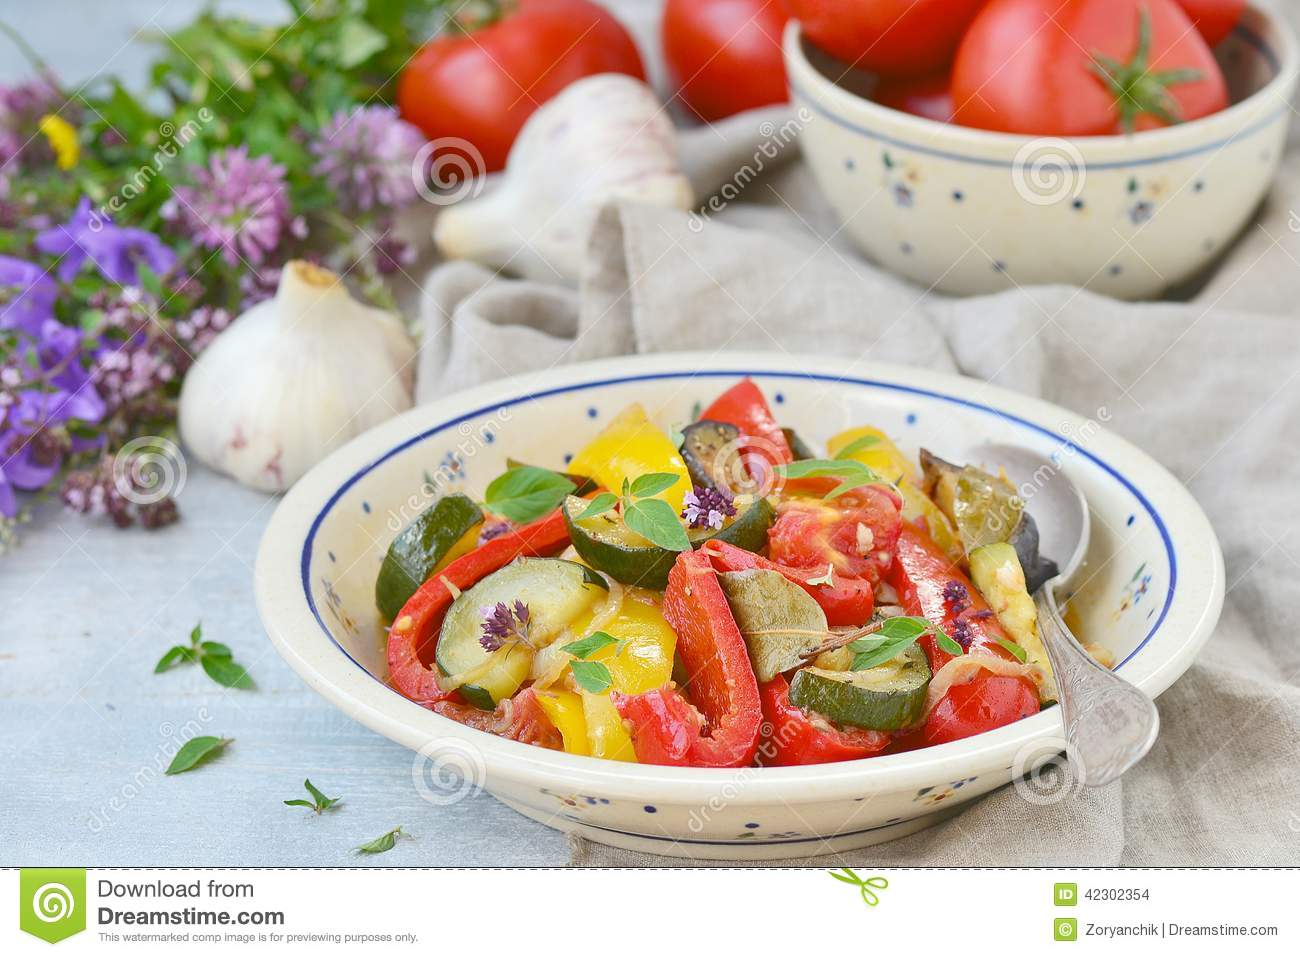 ... , traditional French vegetable stew in a ceramic dish. rustic style